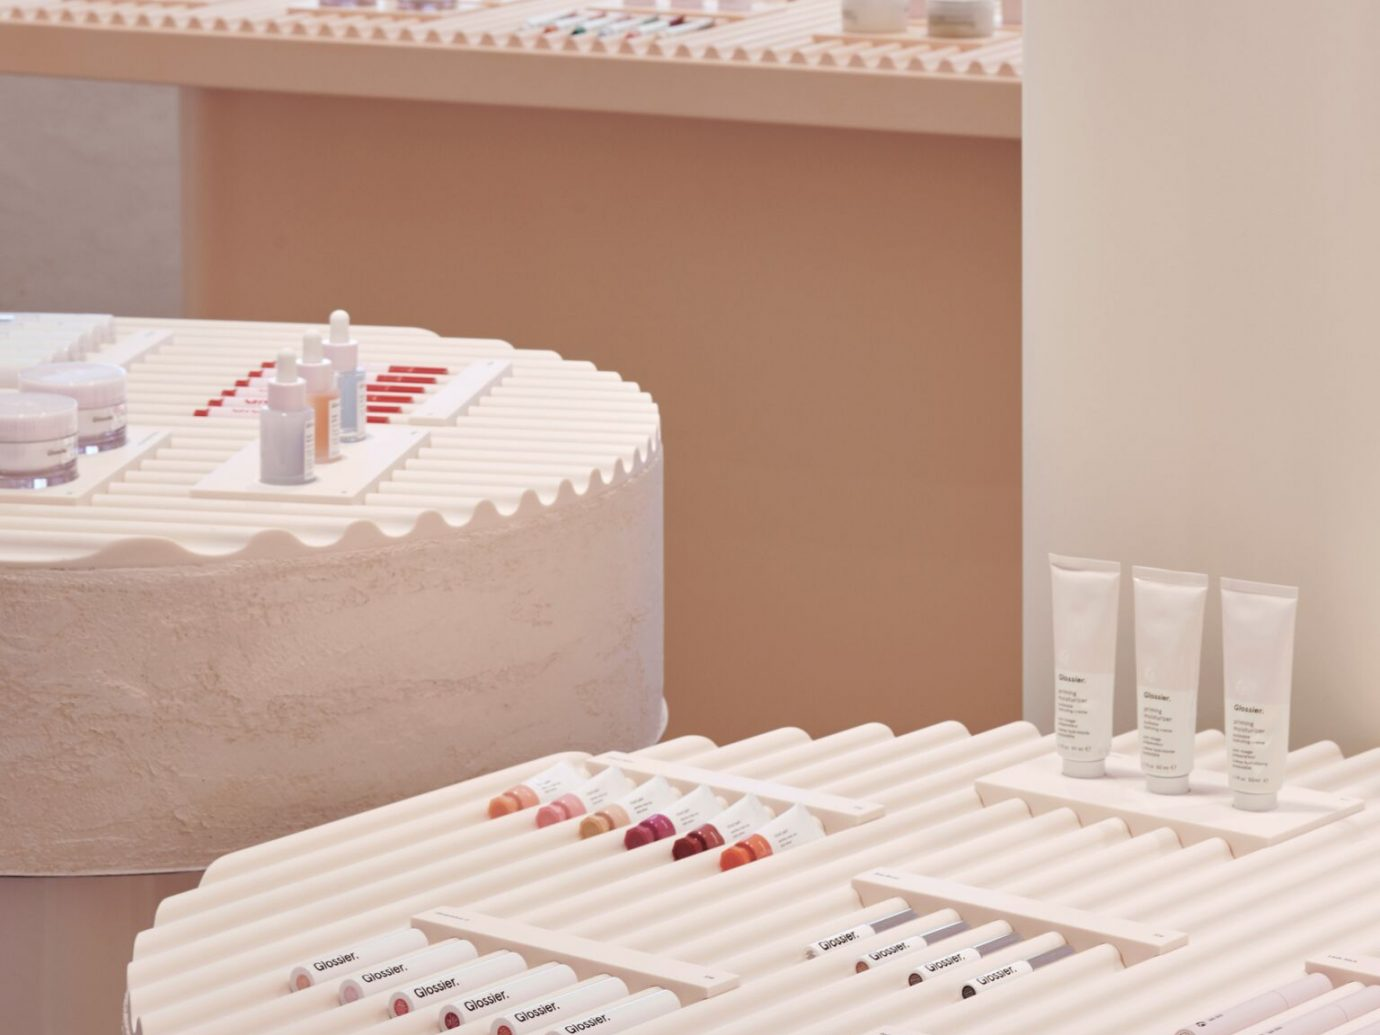 Glossier flagship store interior